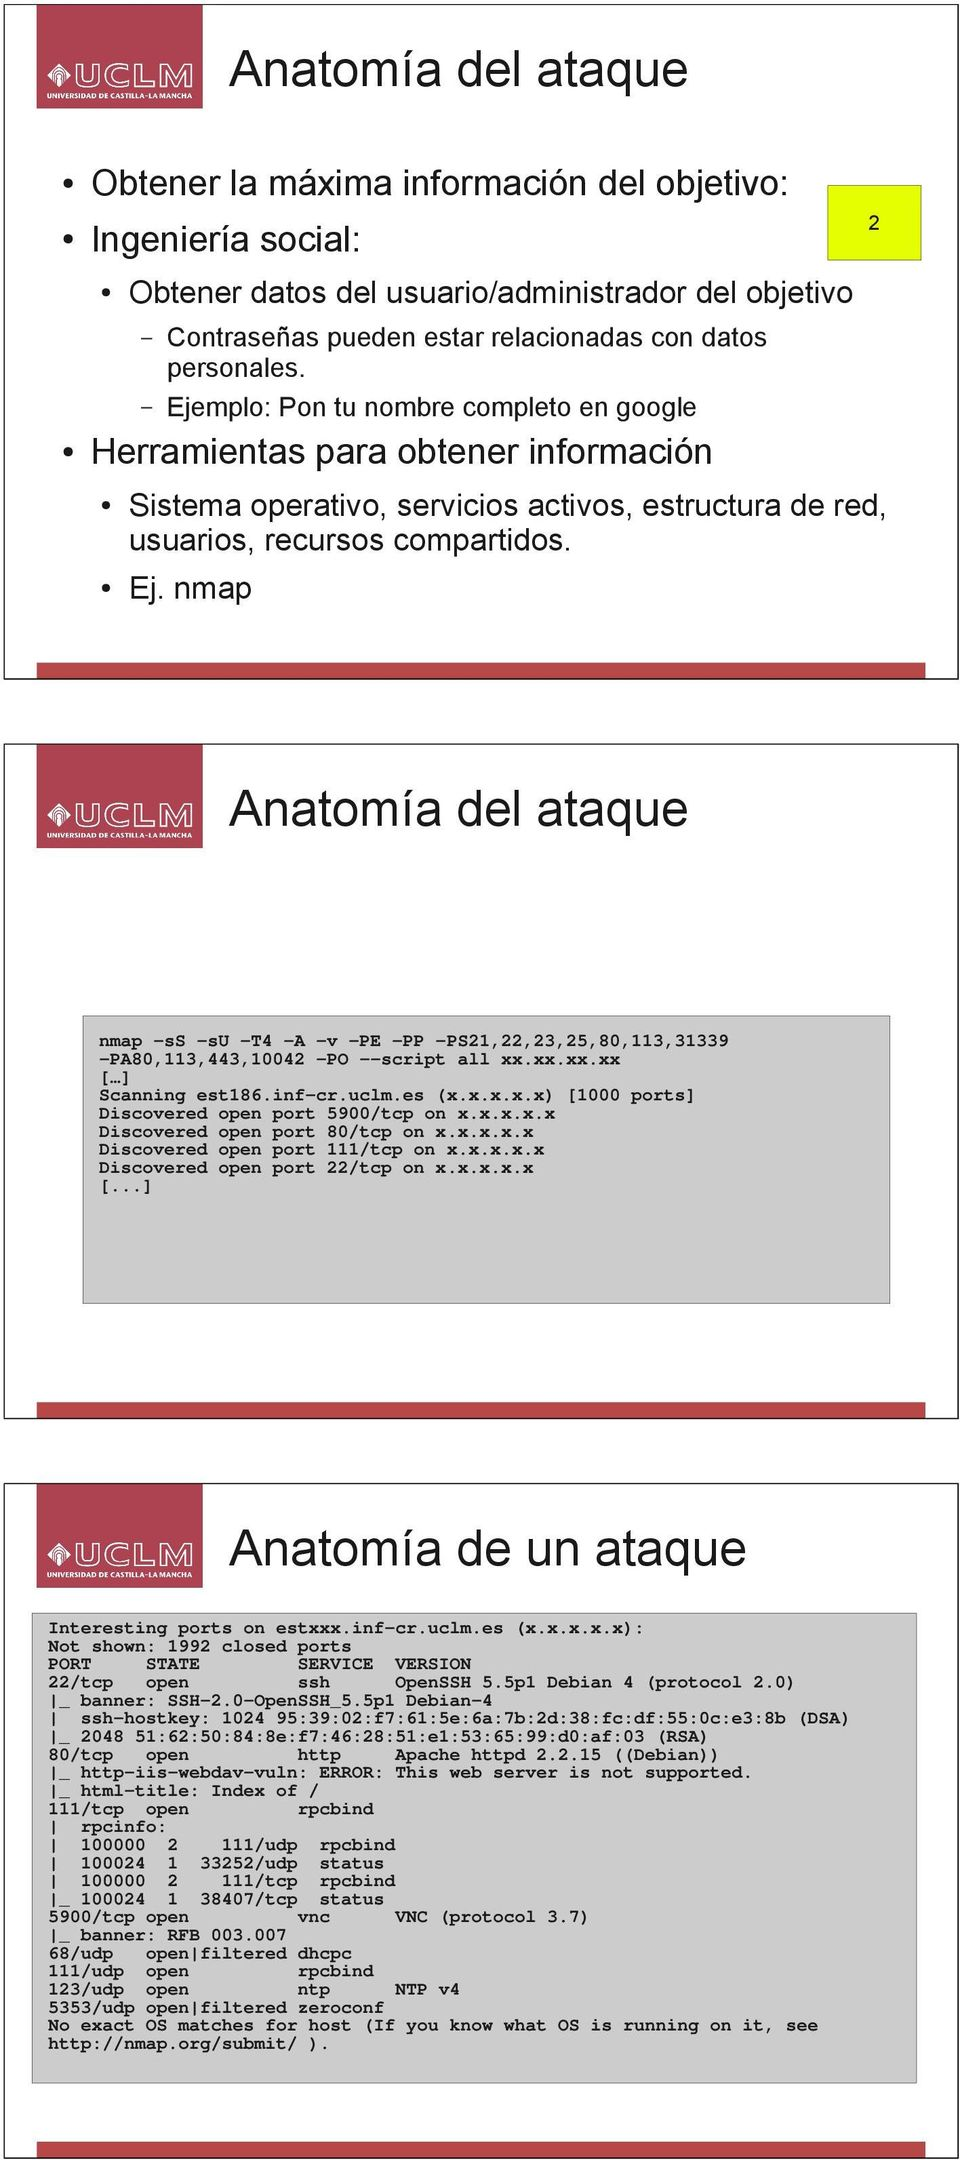 nmap Anatomía del ataque nmap -ss -su -T4 -A -v -PE -PP -PS21,22,23,25,80,113,31339 -PA80,113,443,10042 -PO --script all xx.xx.xx.xx [ ] Scanning est186.inf-cr.uclm.es (x.x.x.x.x) [1000 ports] Discovered open port 5900/tcp on x.